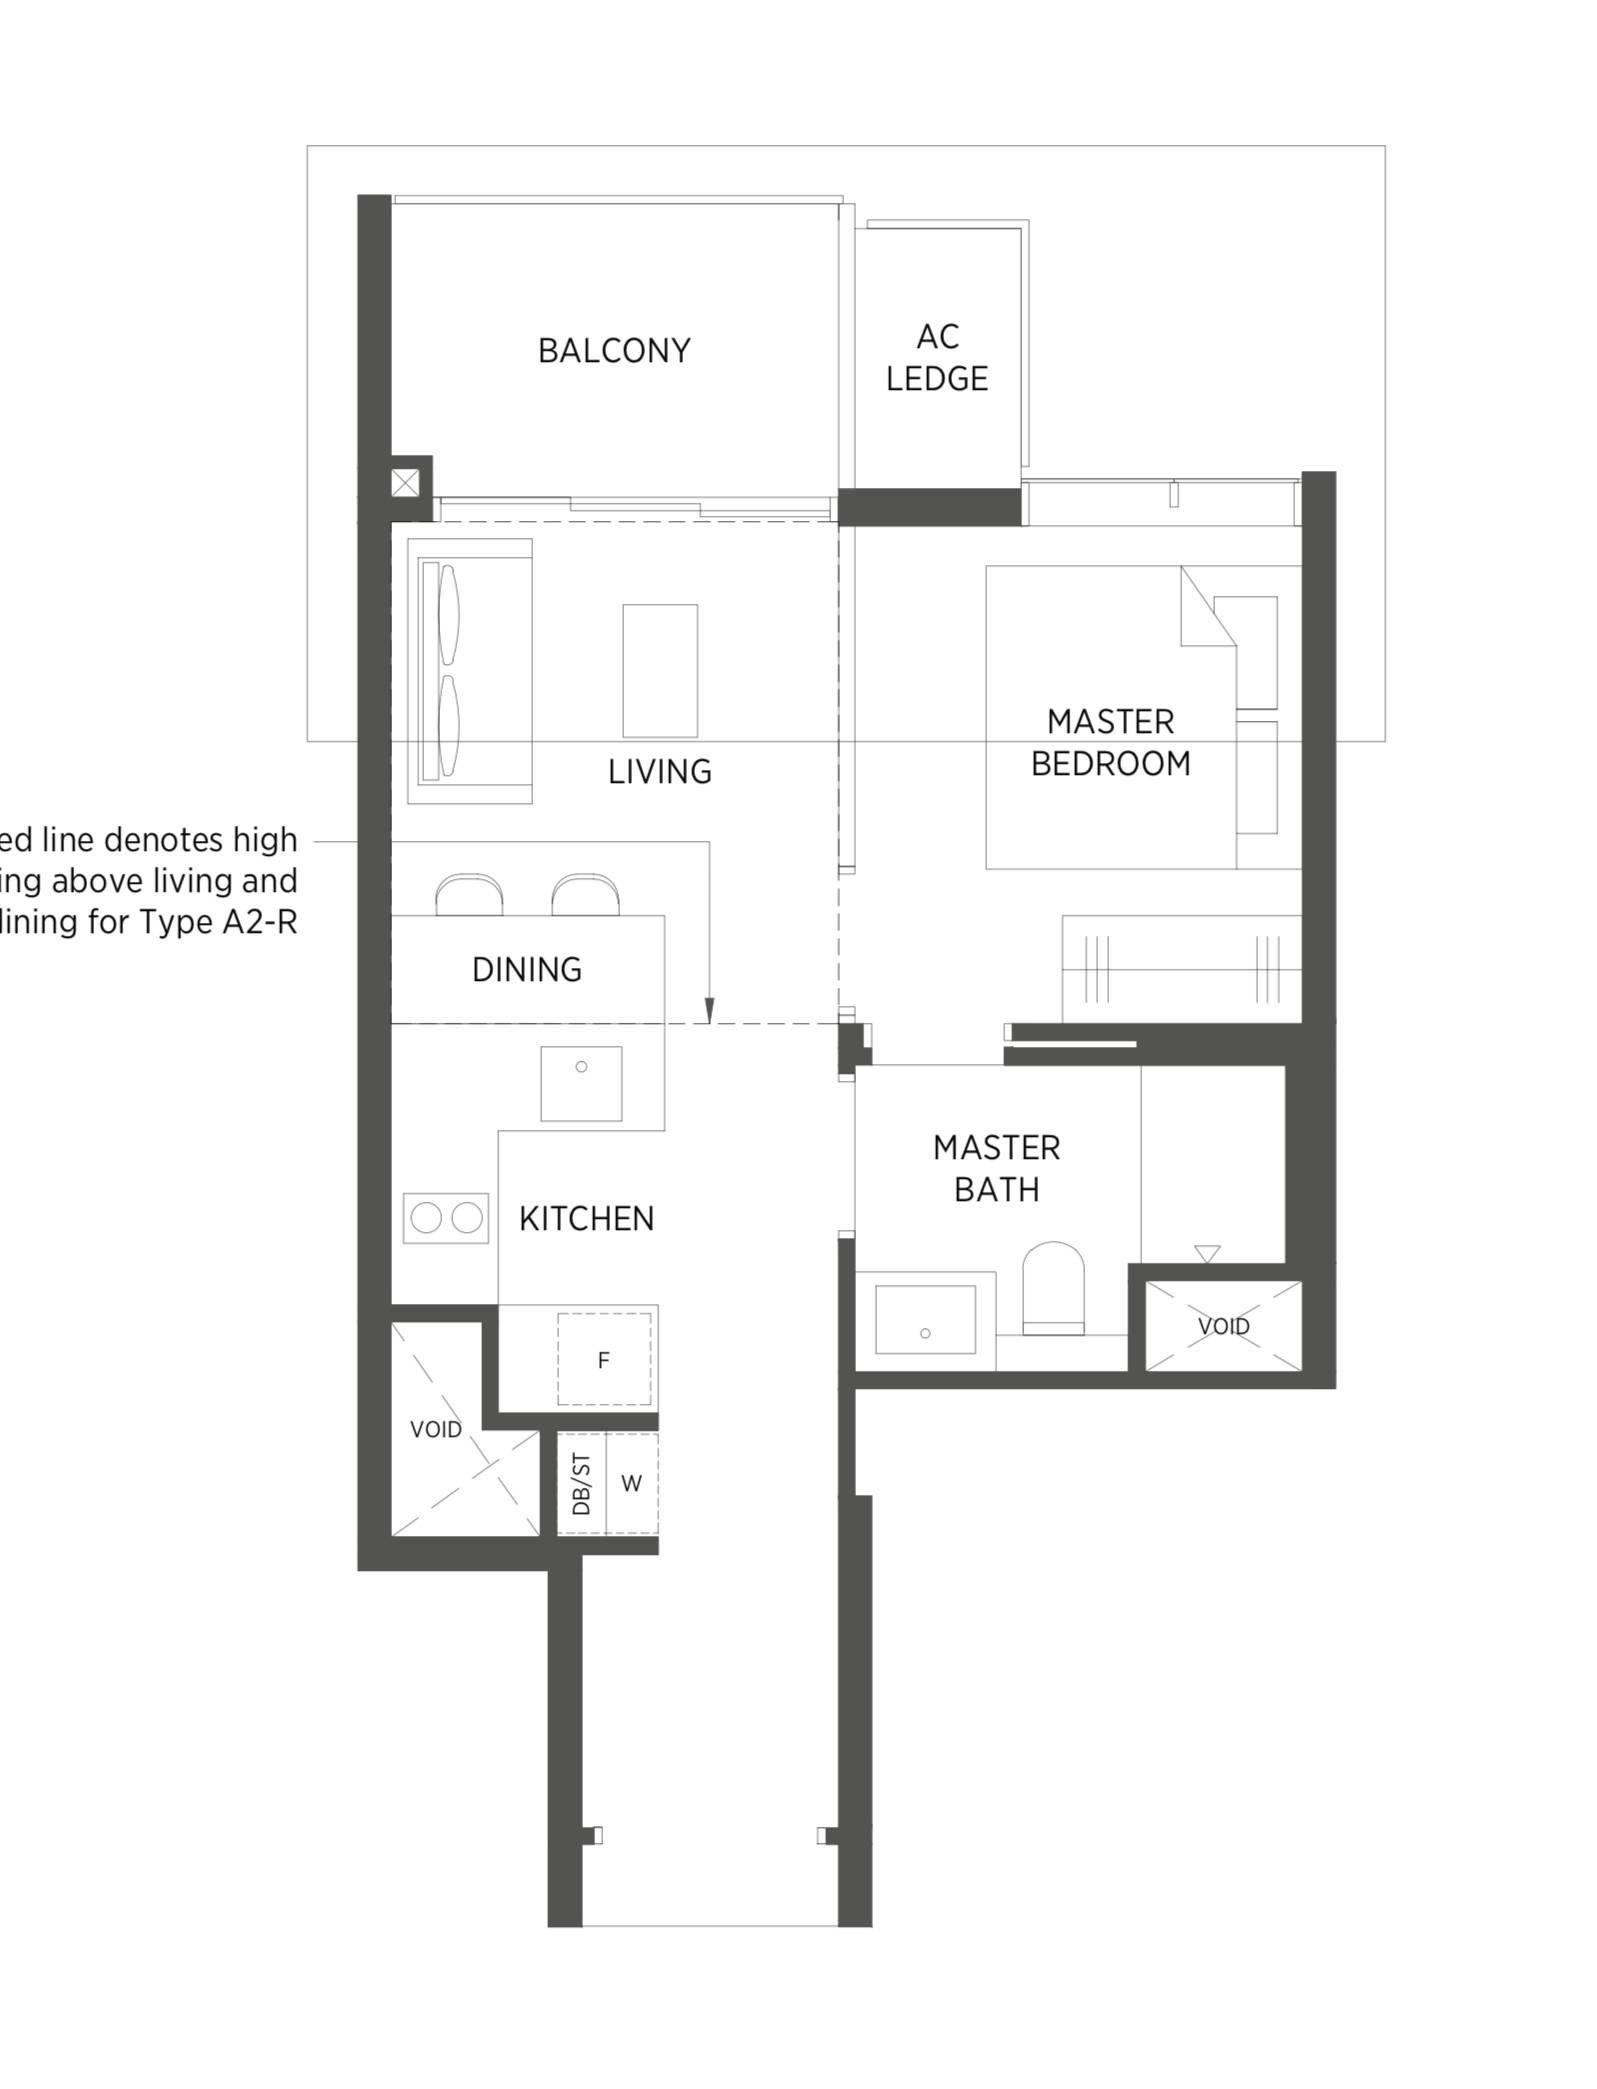 Typical 1 Bedroom